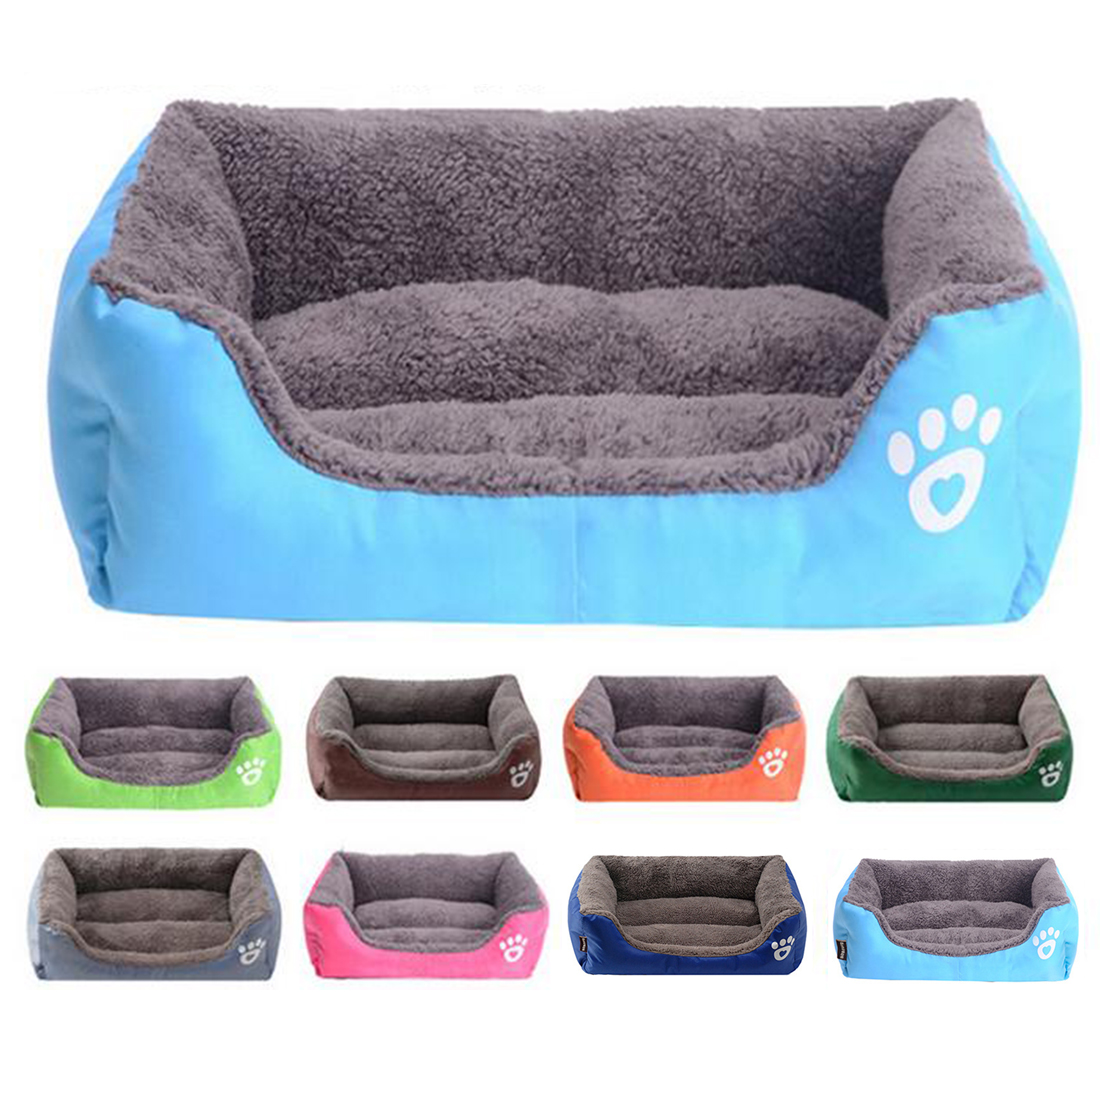 Fall And Winter Warm Kennel For Cat Puppy Warming Dog House Soft Material Nest Dog Baskets  Bed For Dog Cat Pet Dog Beds